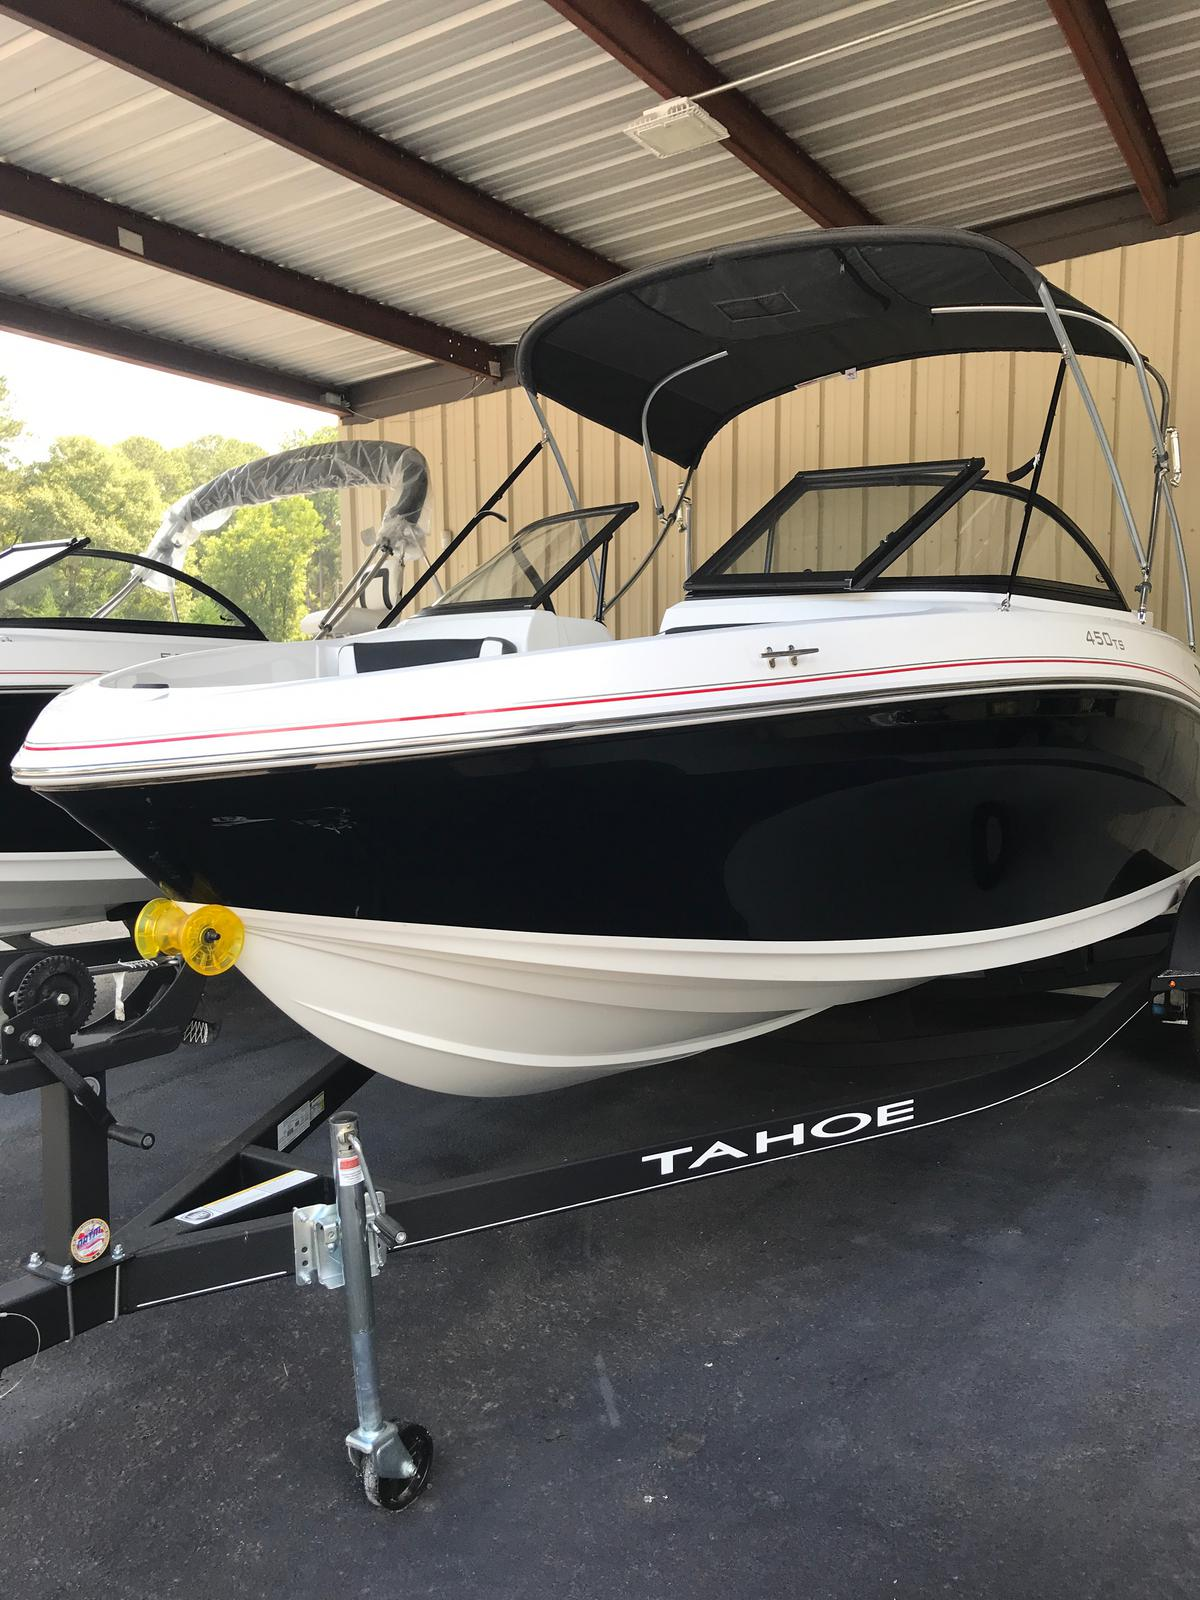 2019 Tahoe boat for sale, model of the boat is 450 TS & Image # 10 of 24